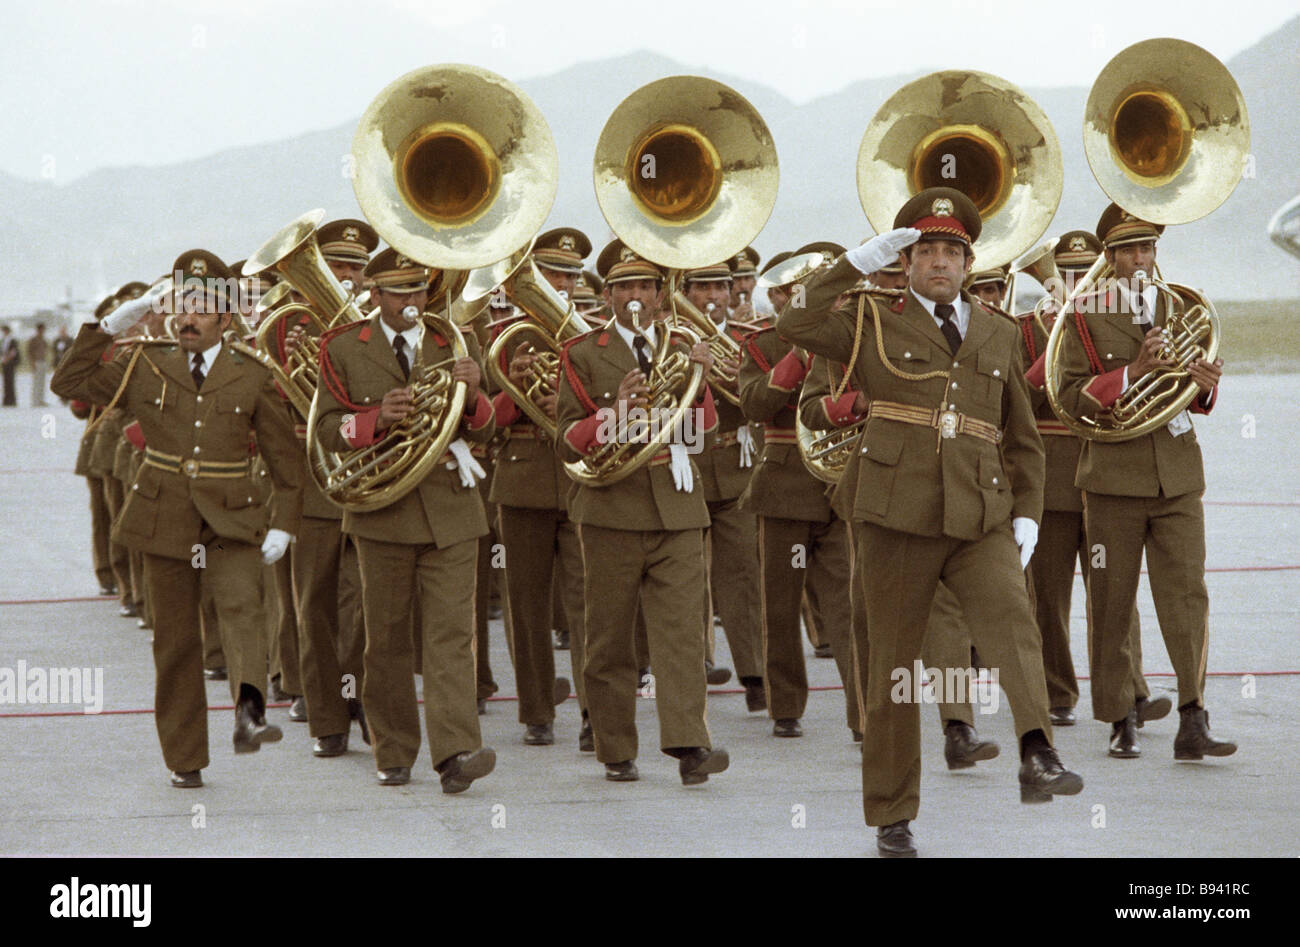 Orchestra of the guard of honor - Stock Image